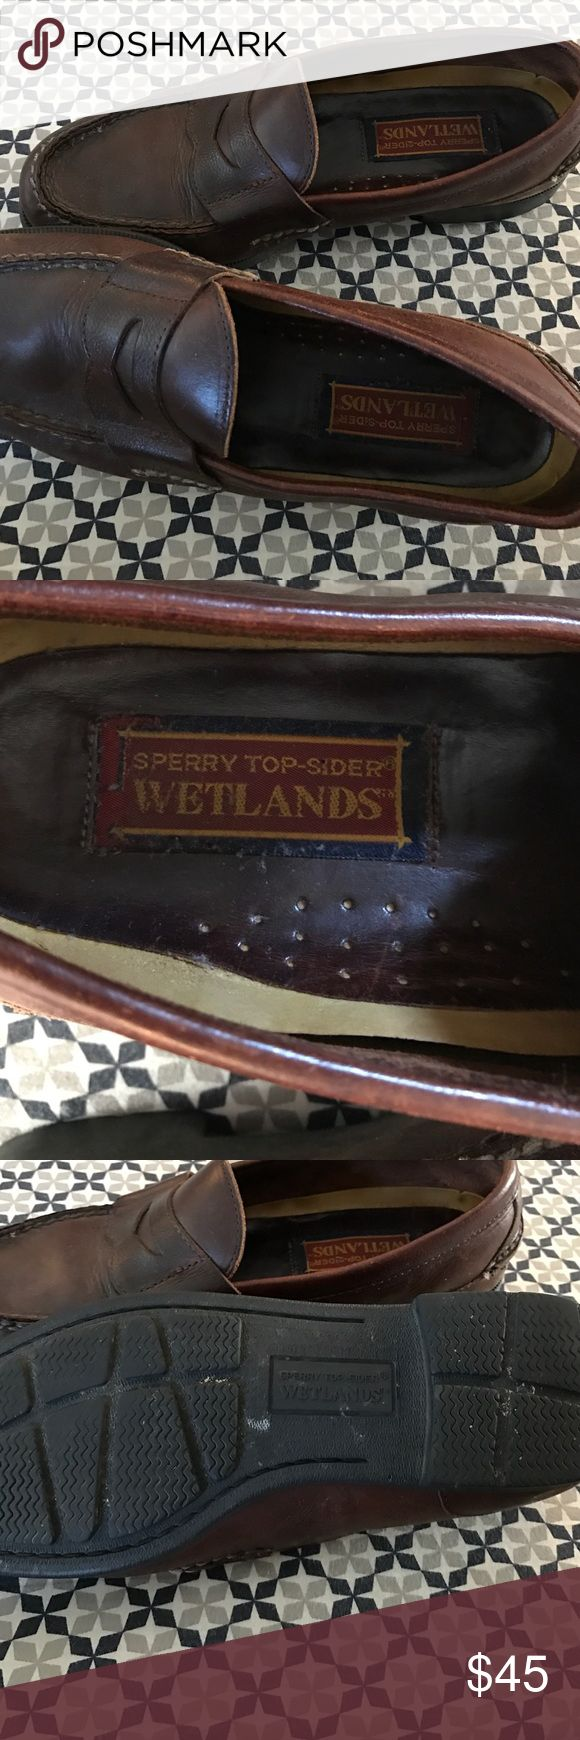 Sperry Topsider Wetlands Penny Loafers Sperry Topsider Wetlands Penny Loafers. Excellent condition. Brown. Size 10. Sperry Top-Sider Shoes